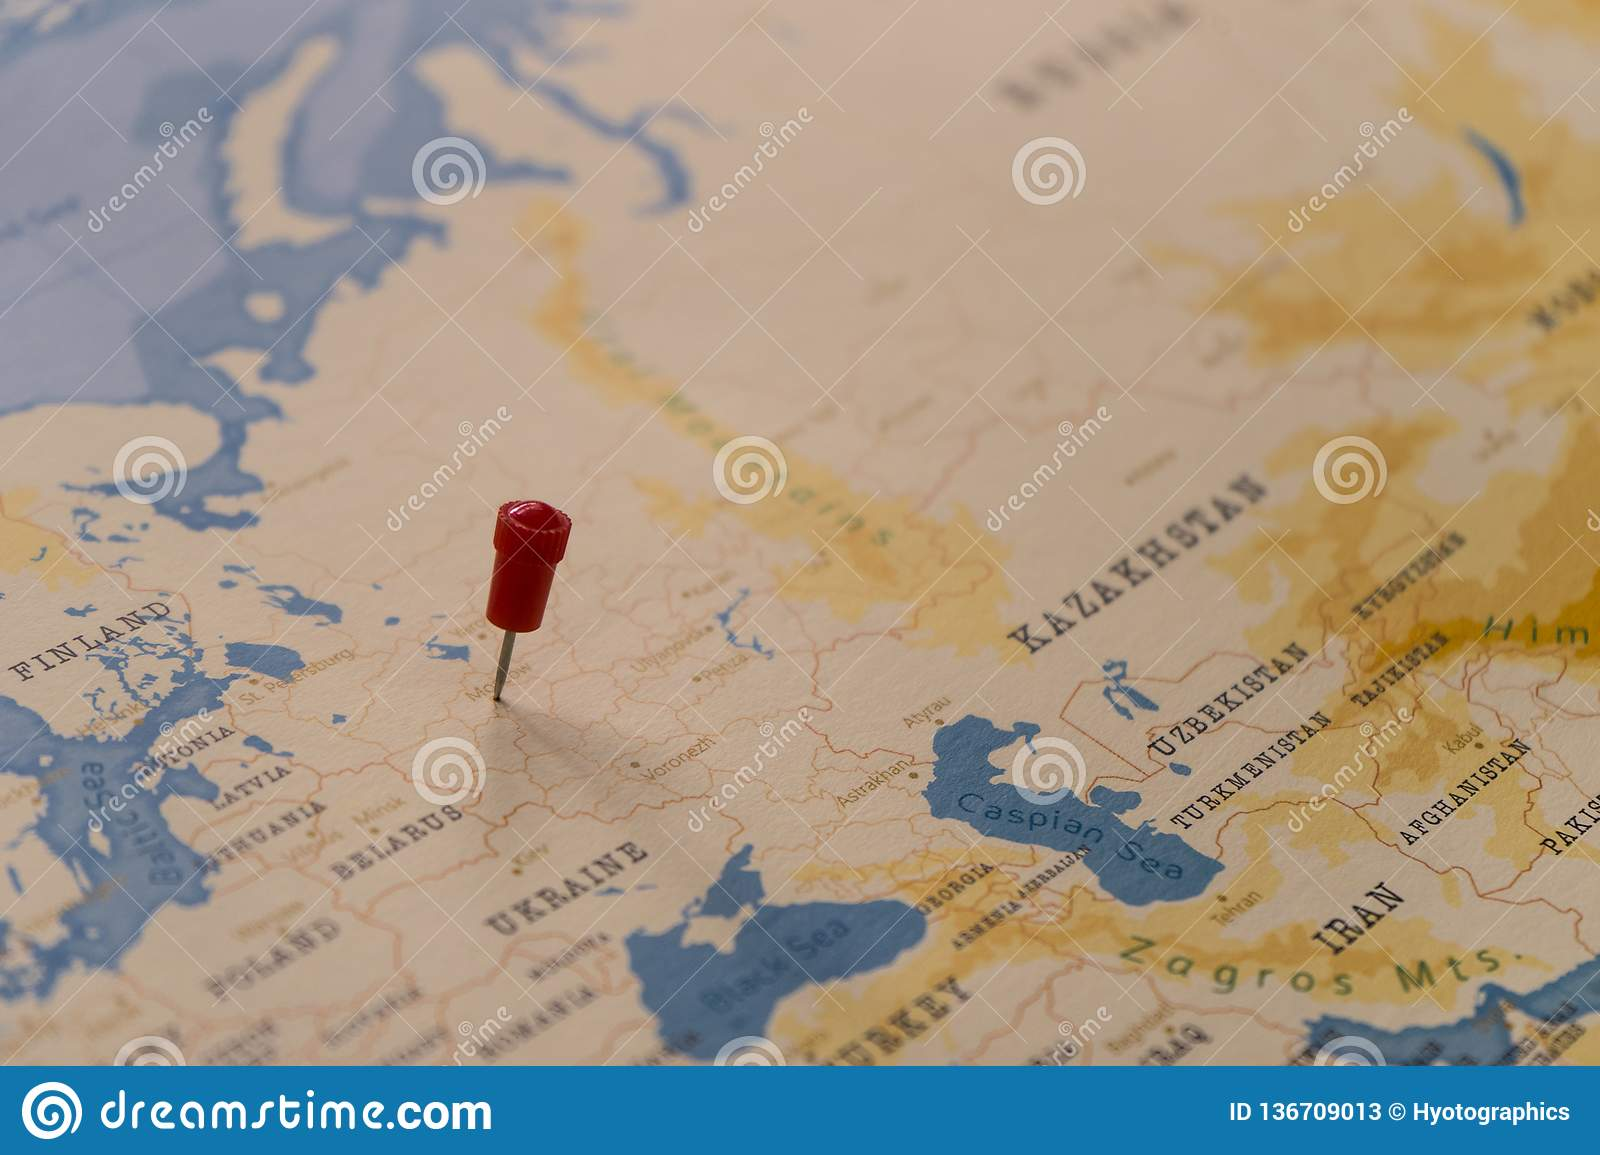 A Pin On Moscow, Russia In The World Map Stock Image - Image of ...